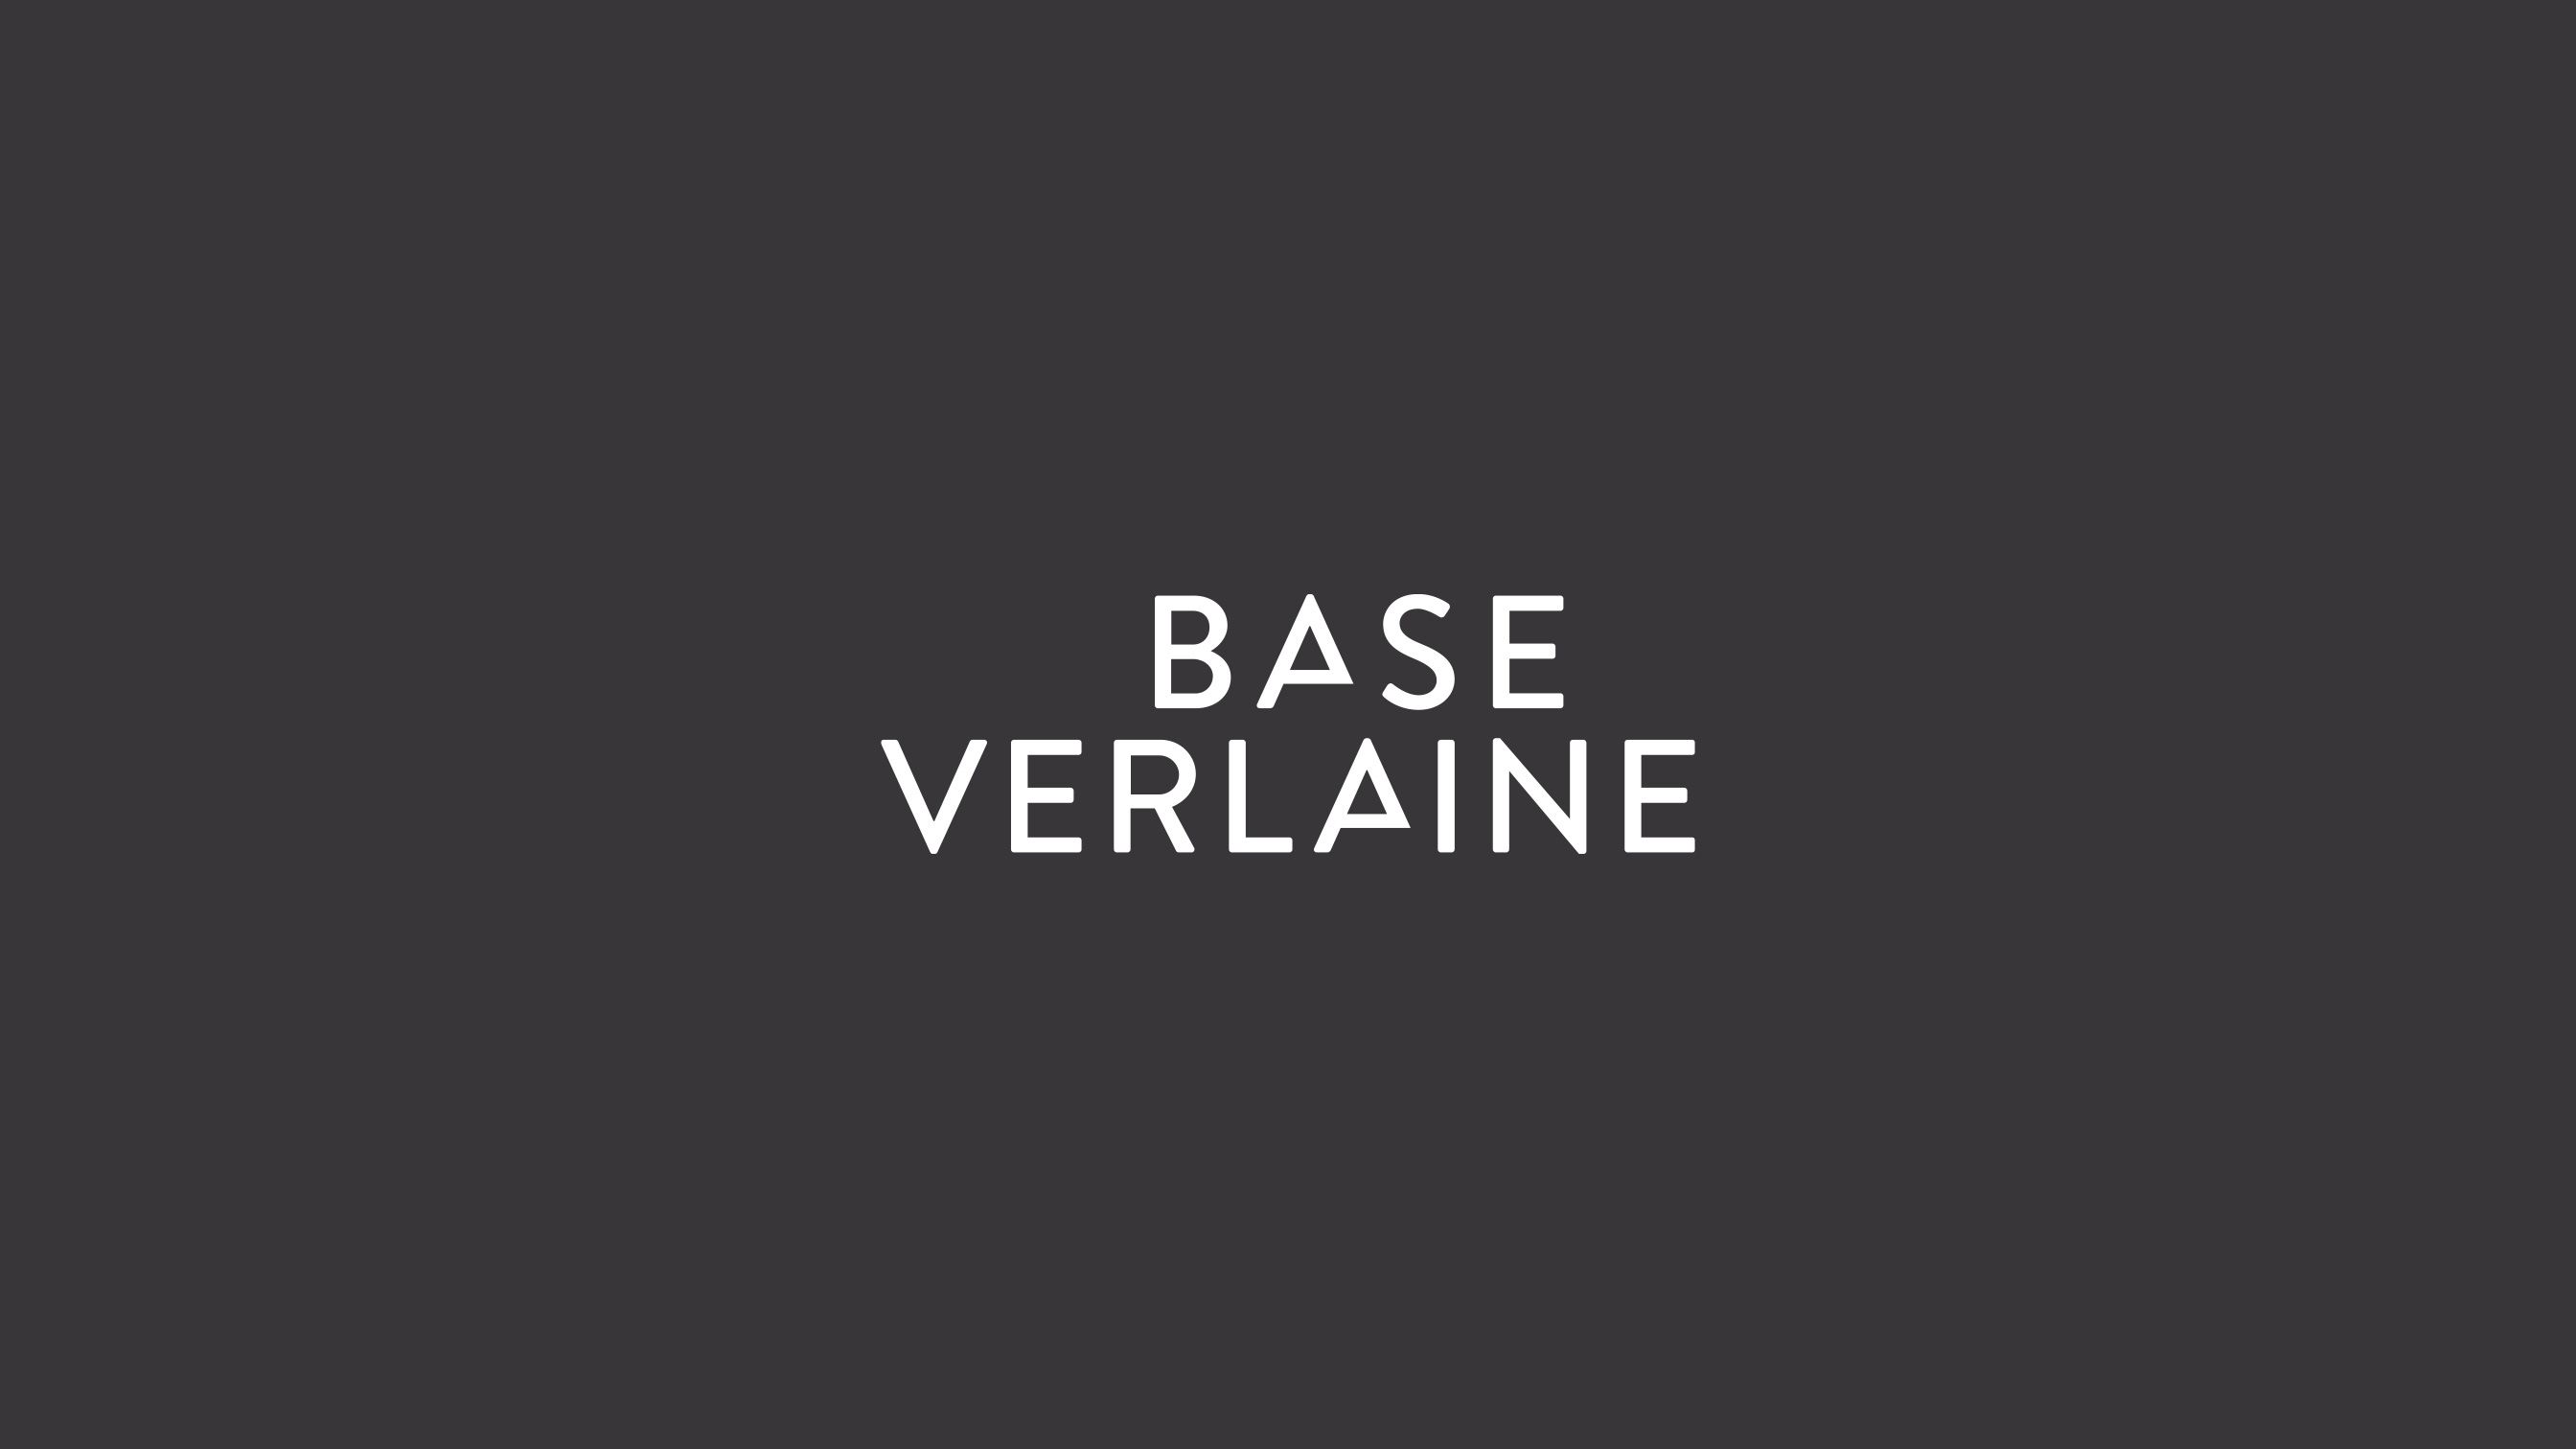 02-base-verlaine-pikteo-webdesign-graphic-design-freelance-paris-bruxelles-londres